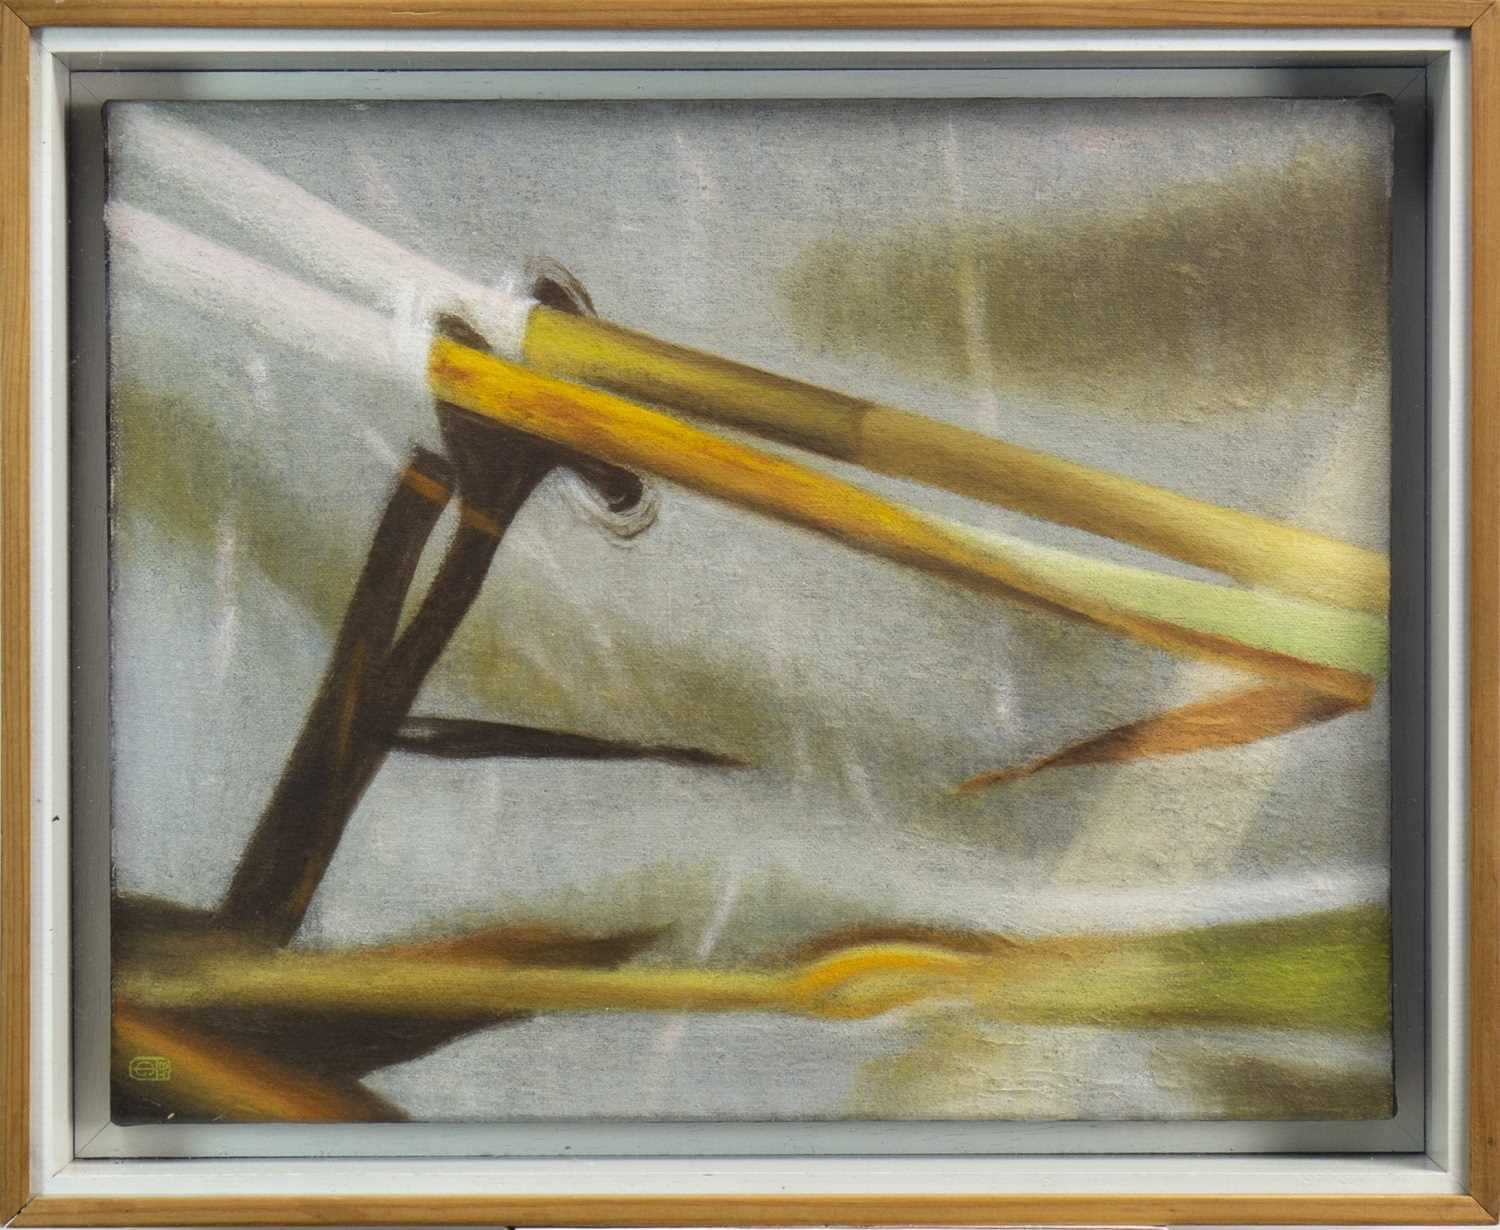 Lot 505-REEDS AND REFLECTIONS, AN OIL BY TIM GOULDING